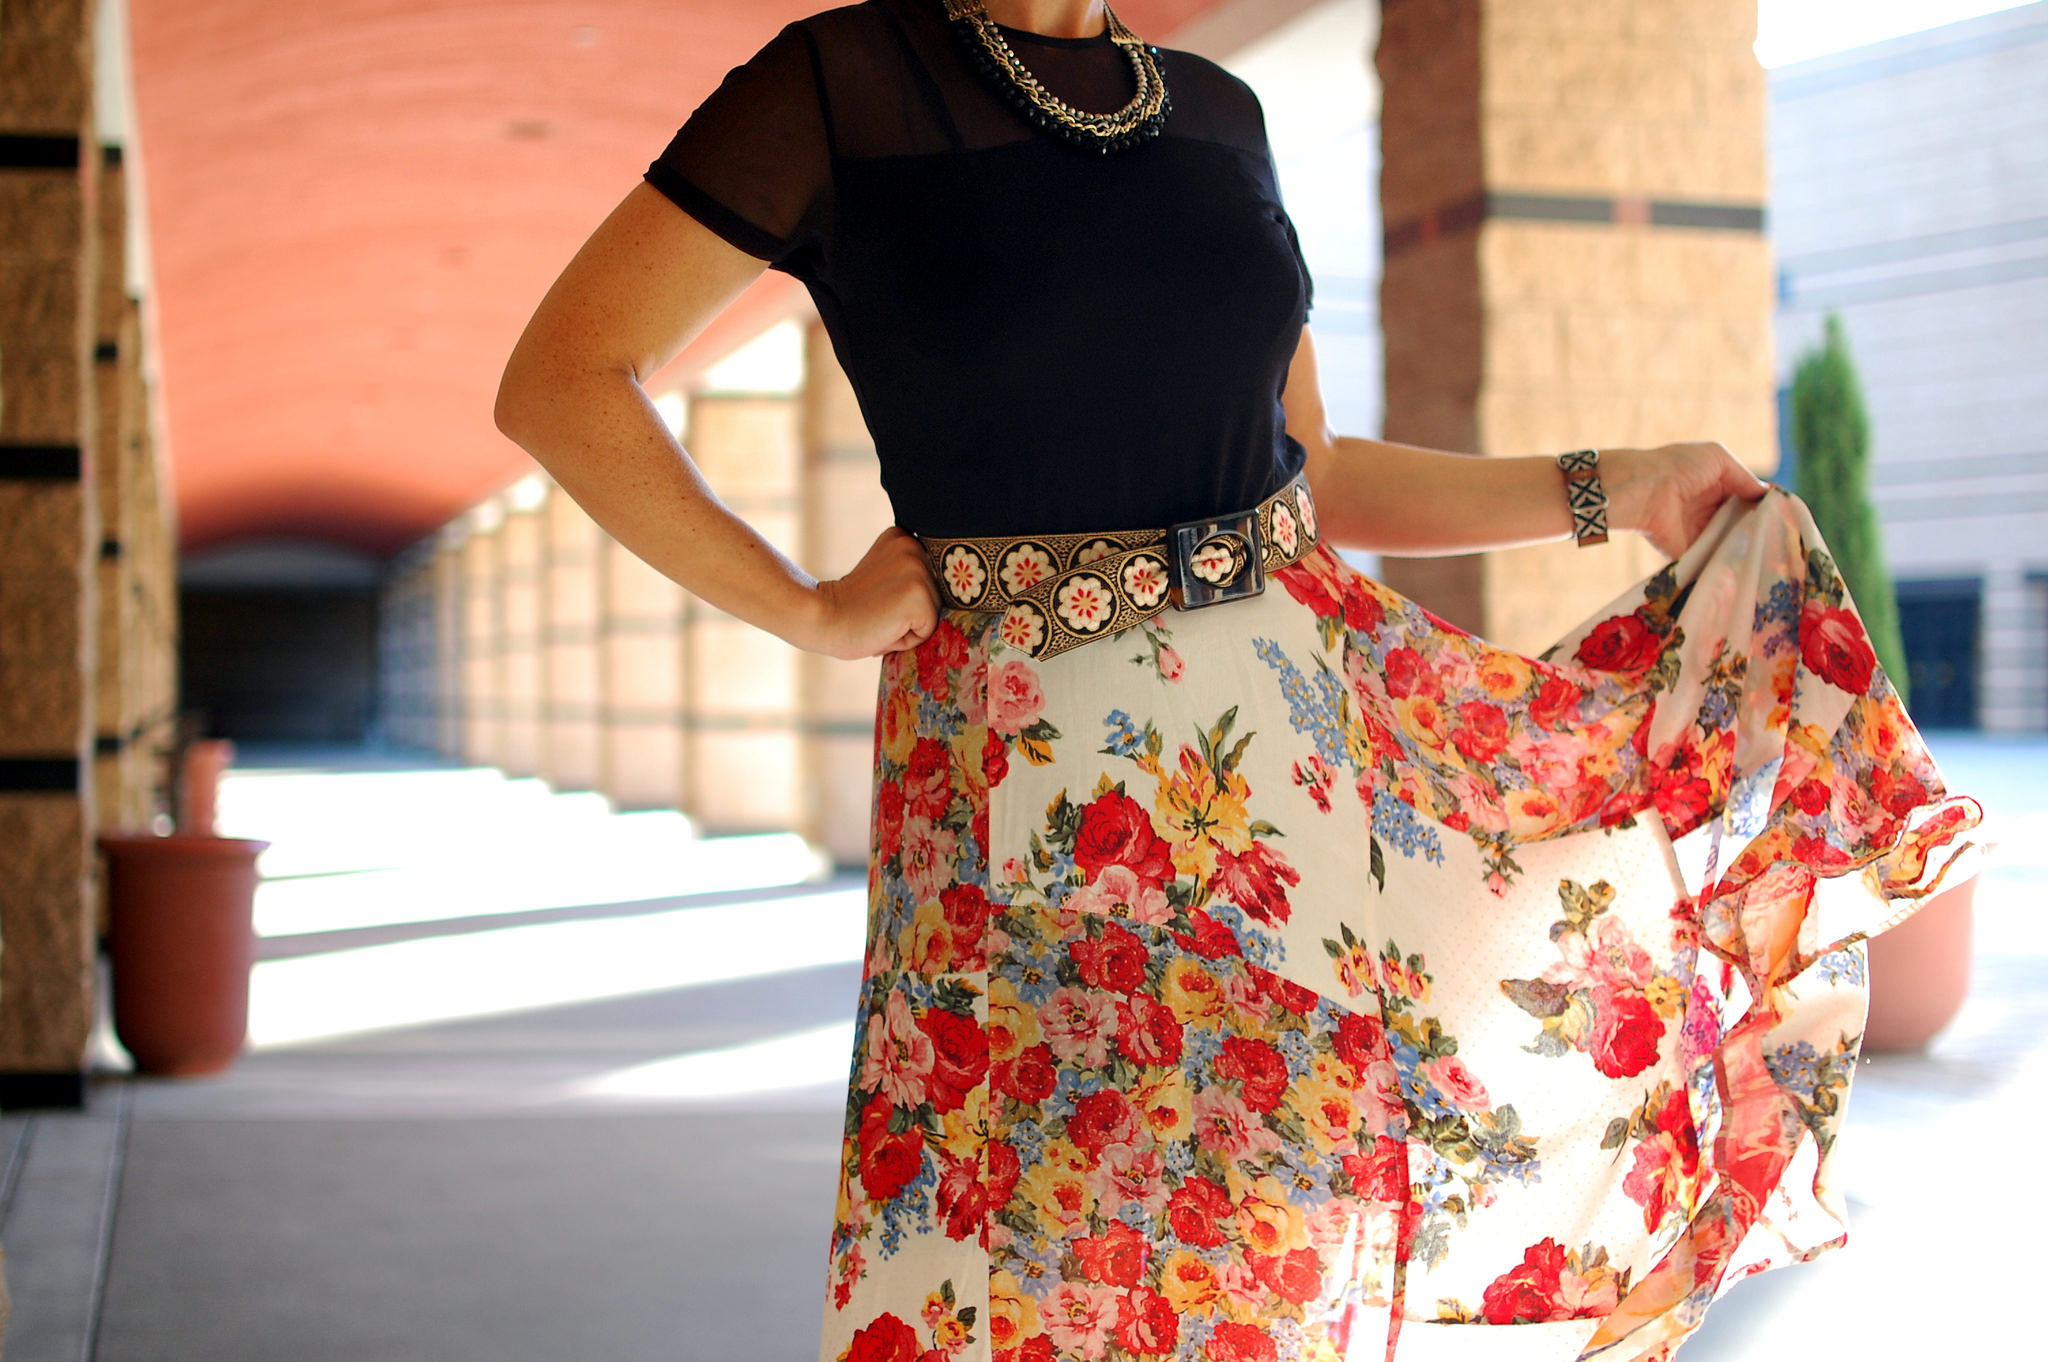 floral skirt patterned belt mix daily outfit blog ootd whatiwore2day